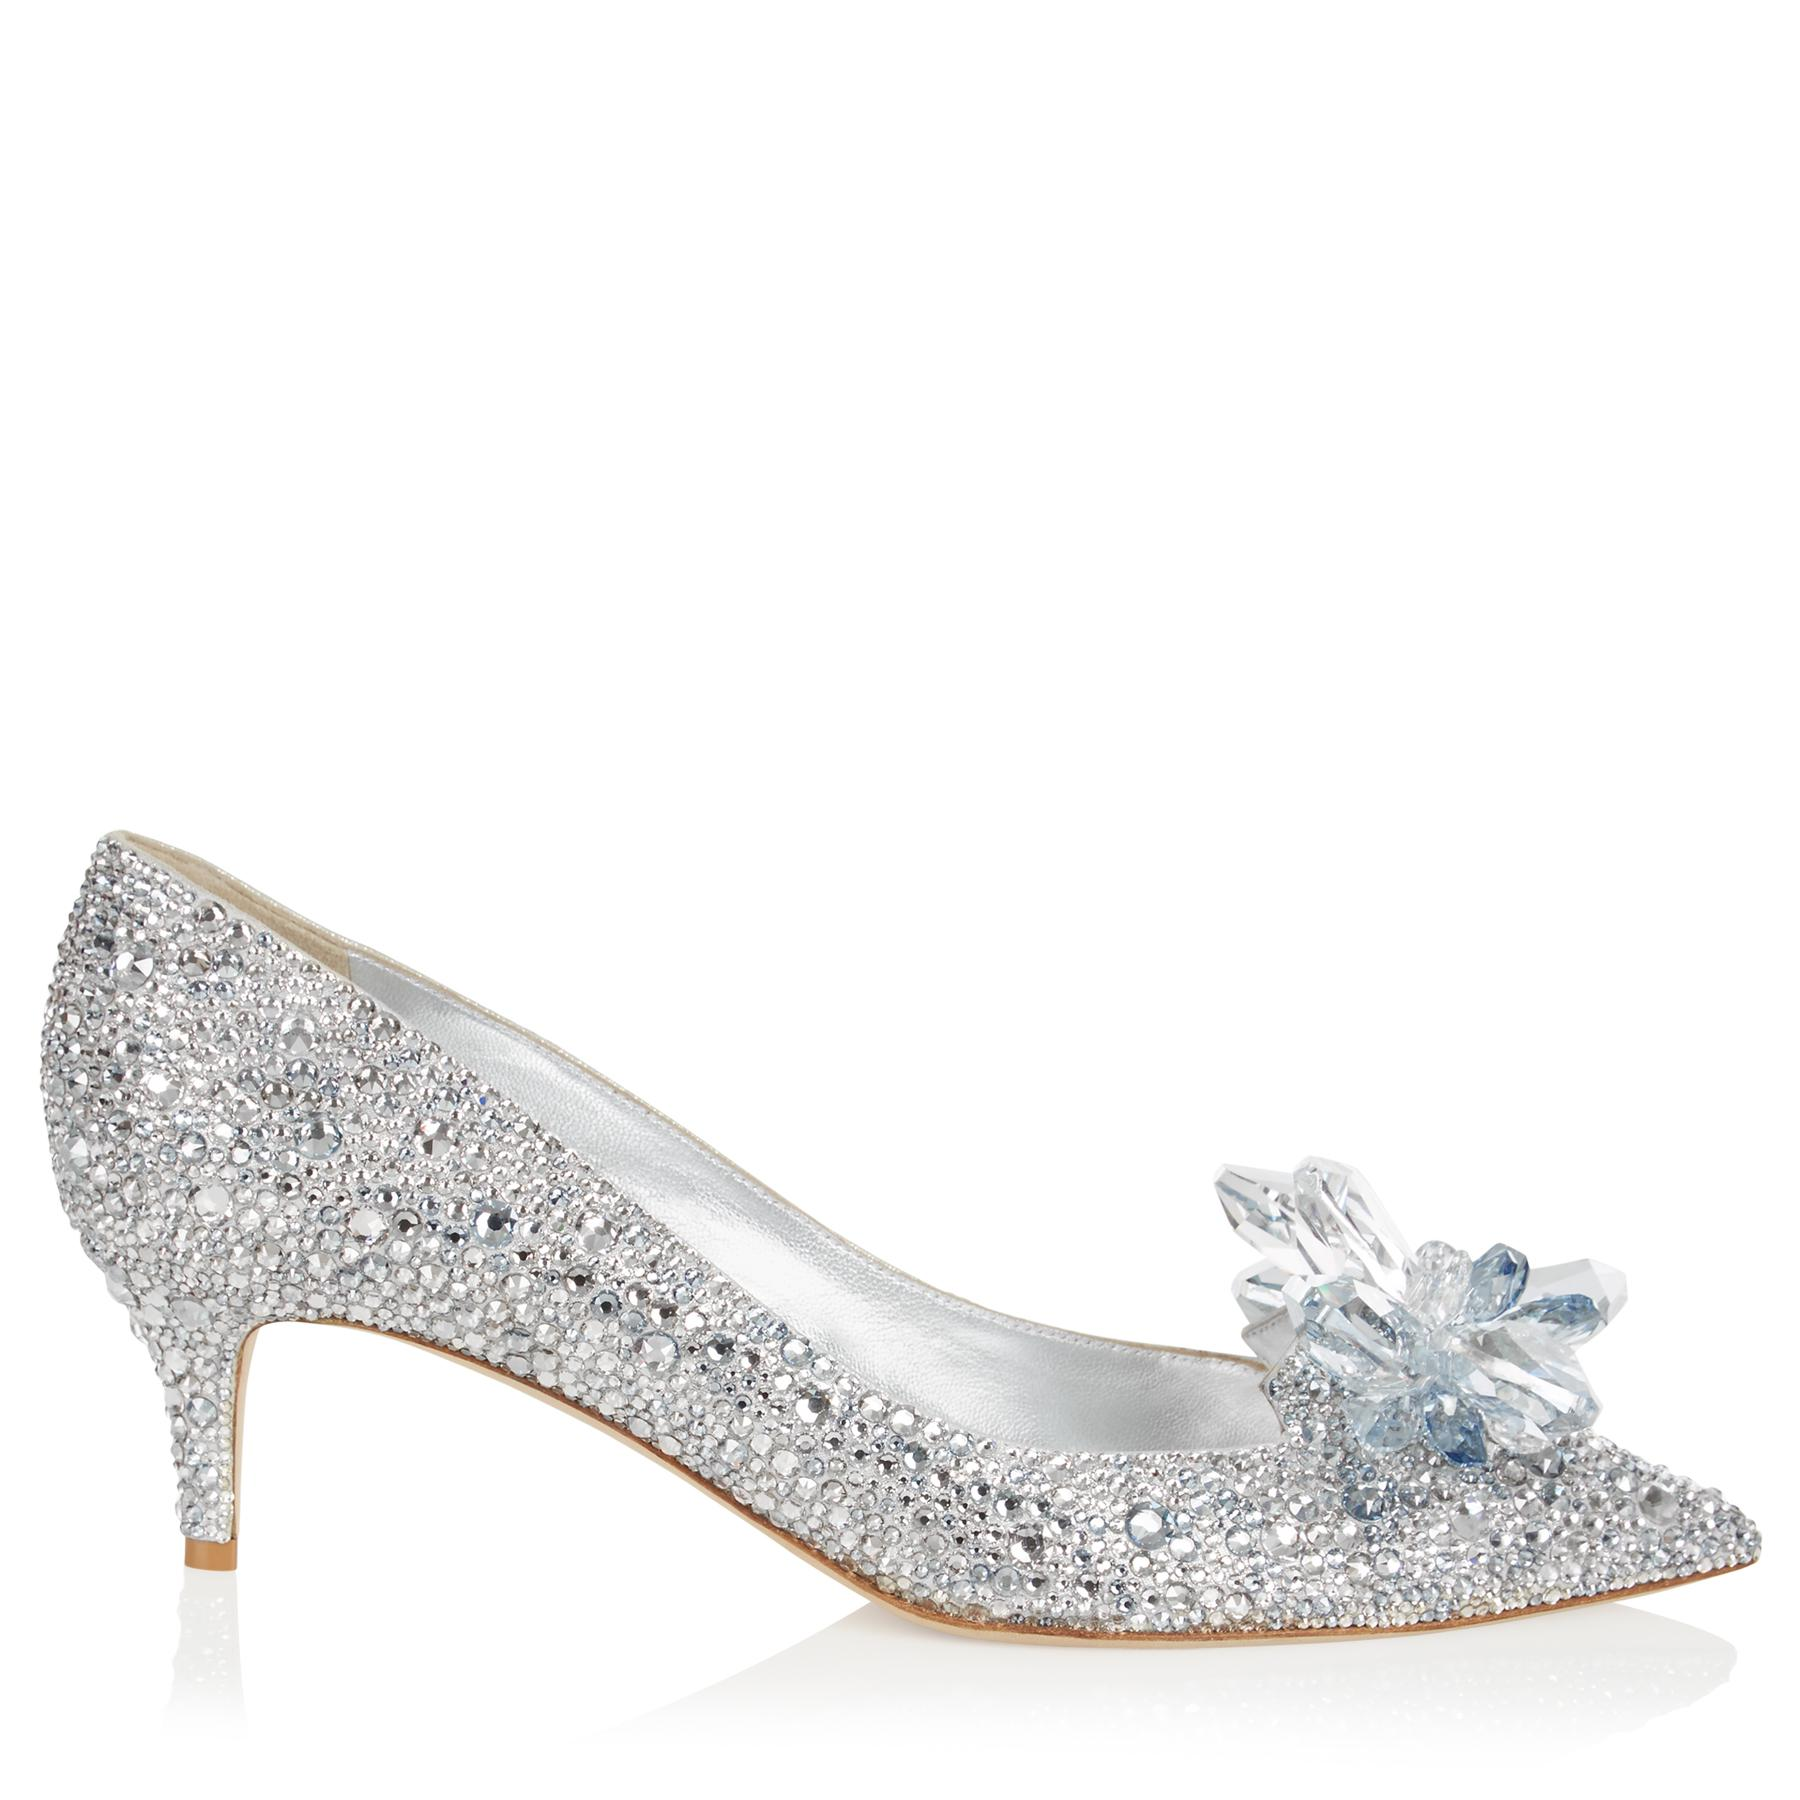 15396df6930 Lyst - Jimmy Choo Allure Crystal Covered Pointy Toe Pumps in Metallic